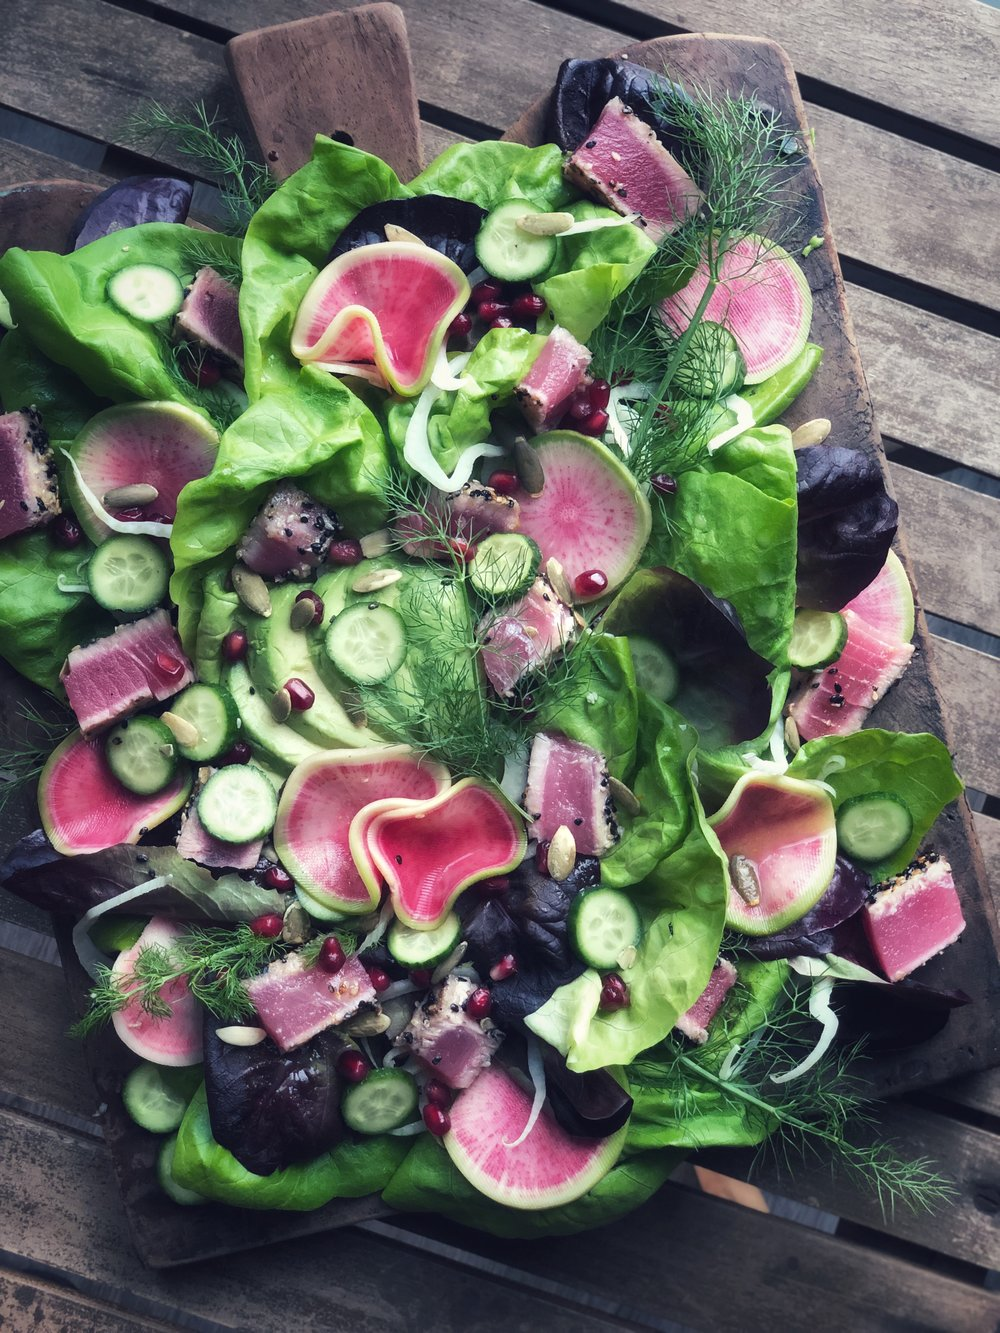 Radiant Radishes in Sweet Greens